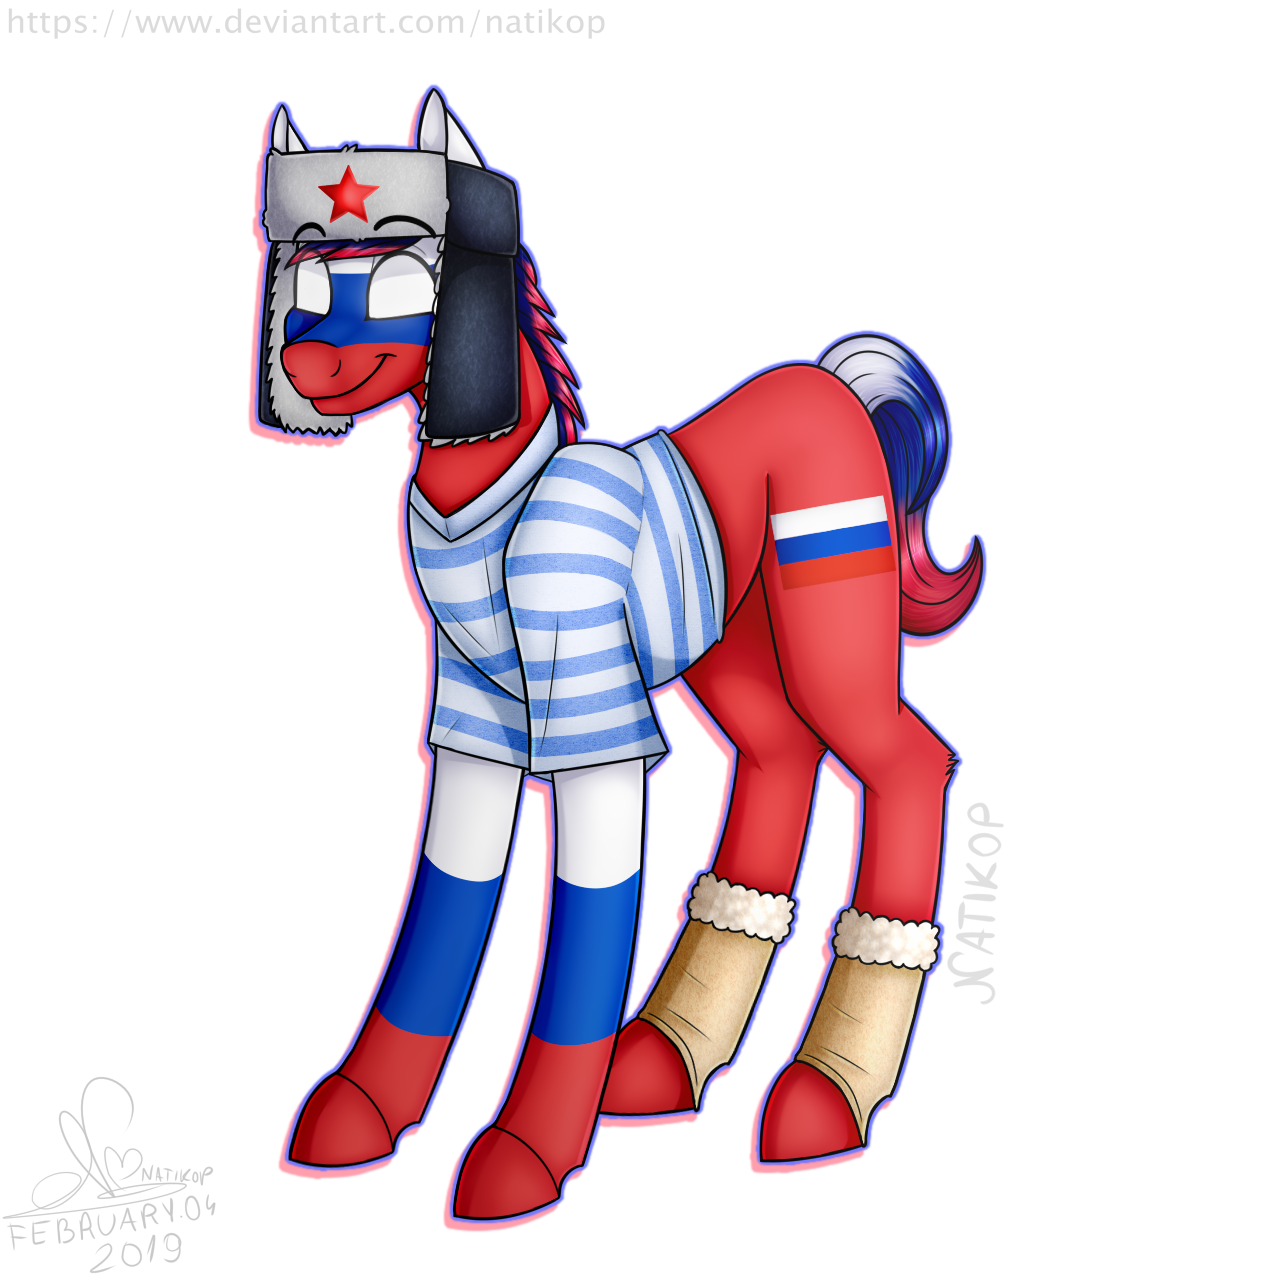 Russia Pony [Countryhumans x MLP] by Natikop on DeviantArt